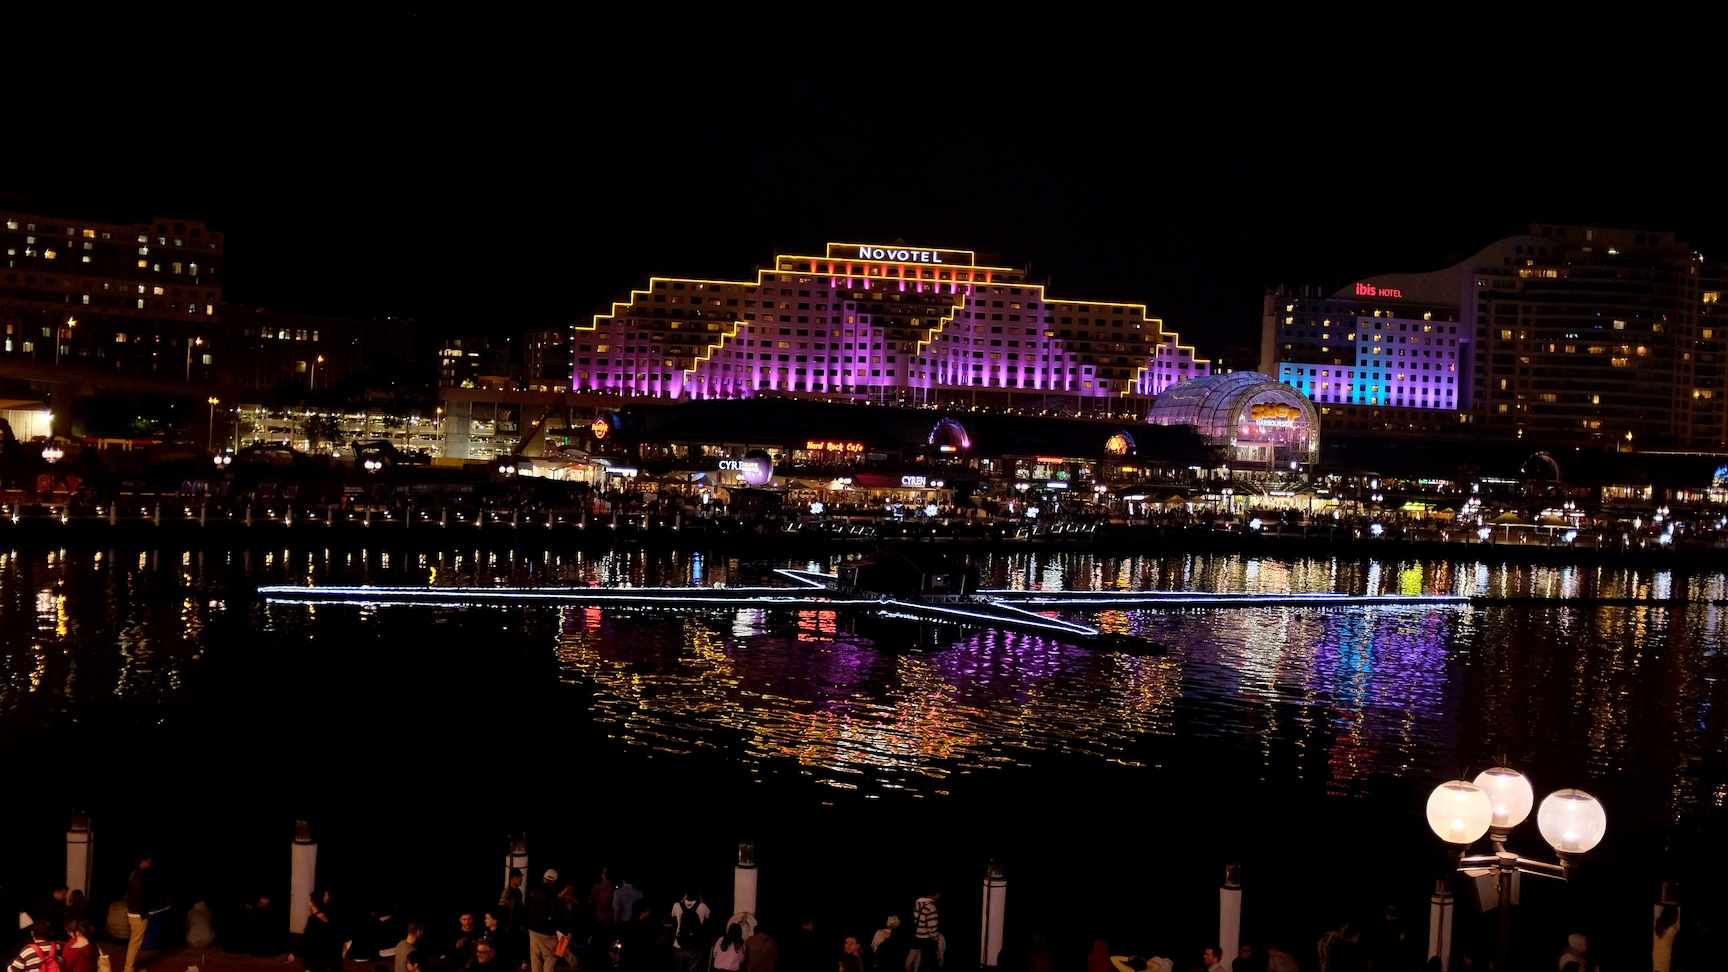 Vivid sydney, sydney, lights, laser show, music, aquatique, darling harbour, sydney event, Australia, art, water show, water, river island, sportsgirl, lovisa, nightlife, sydney life, nezuki, fashion, street style, slip dress, perth blogger